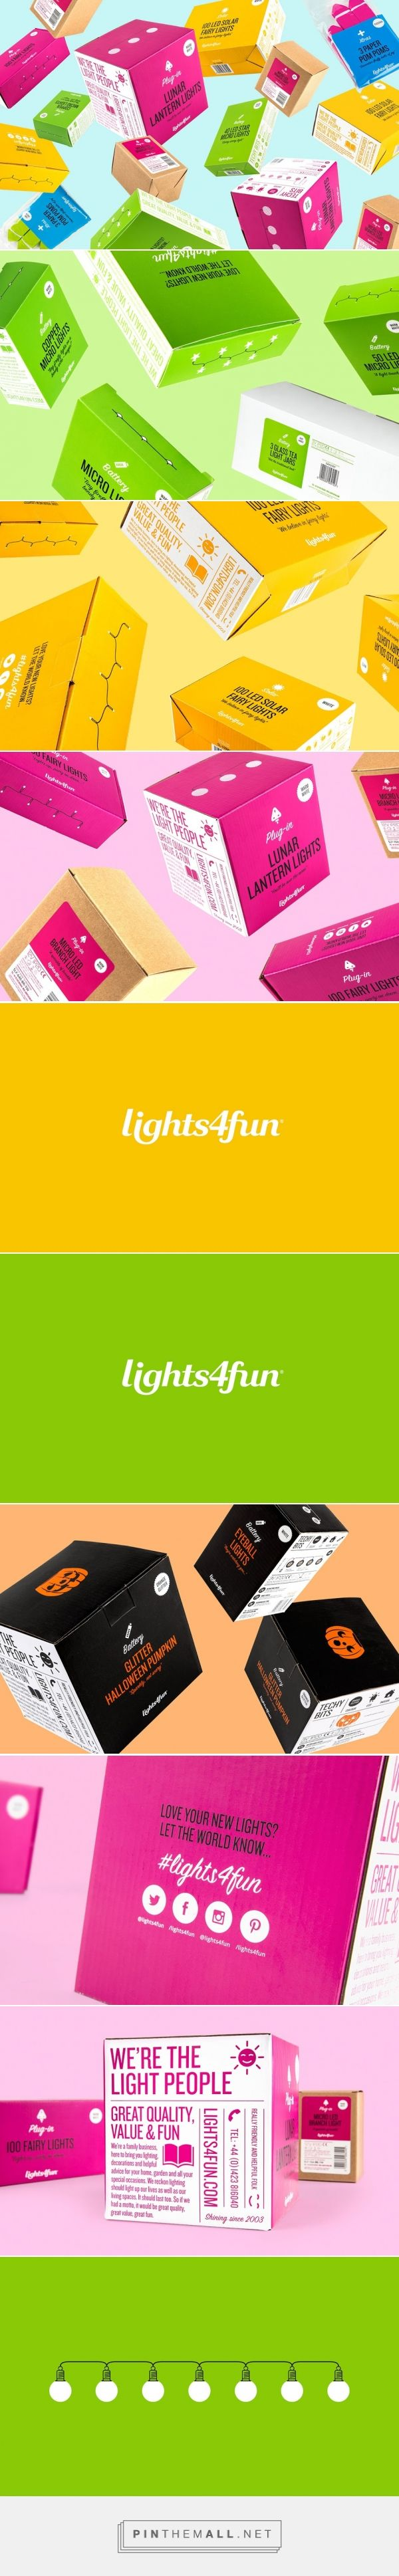 Lights4fun Lighting packaging design by Robot Food Design (UK) - http://www.packagingoftheworld.com/2016/04/lights4fun.html